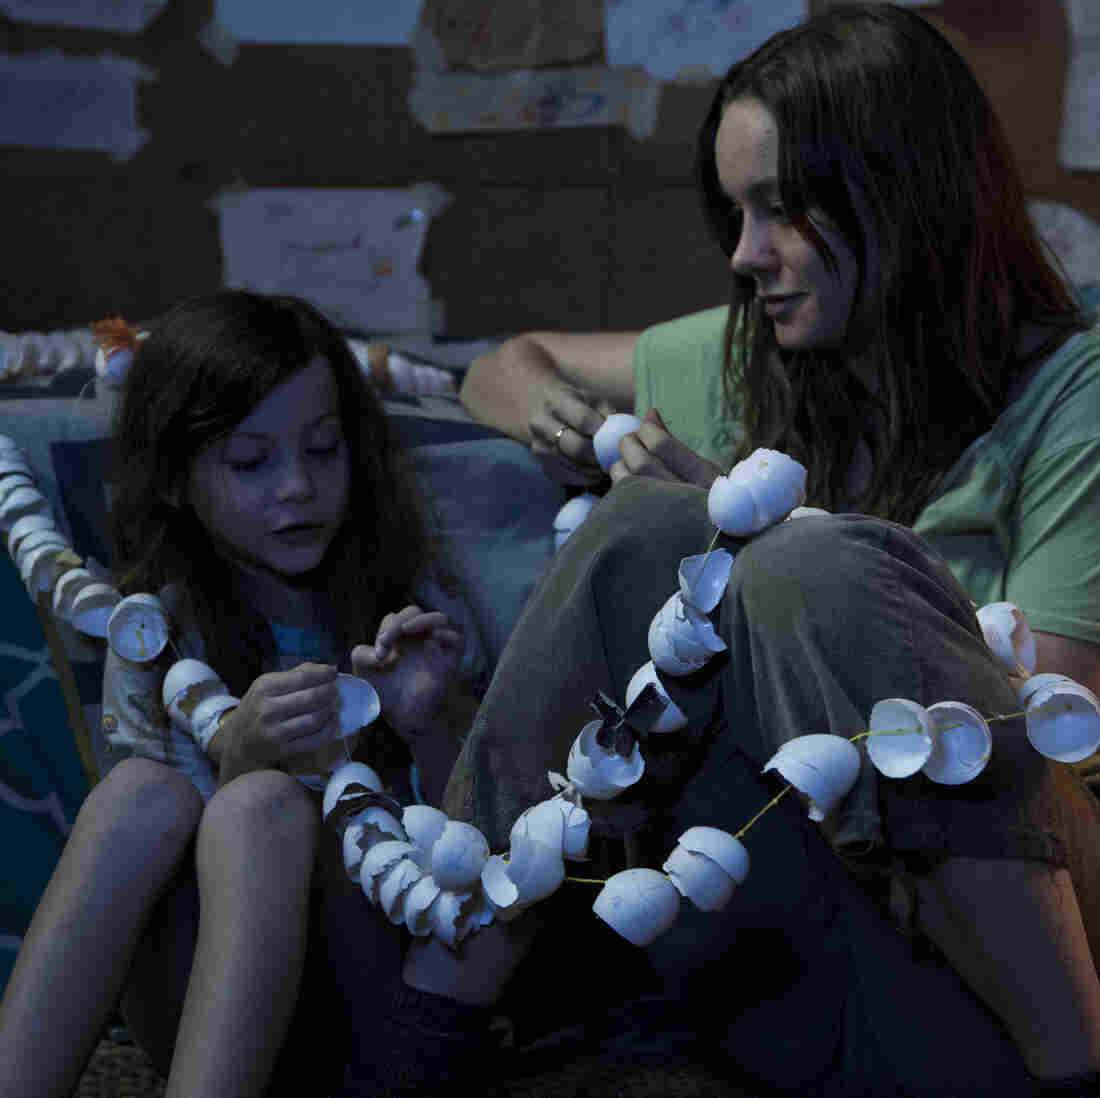 'Room' Finds A Mother And Son In Isolation